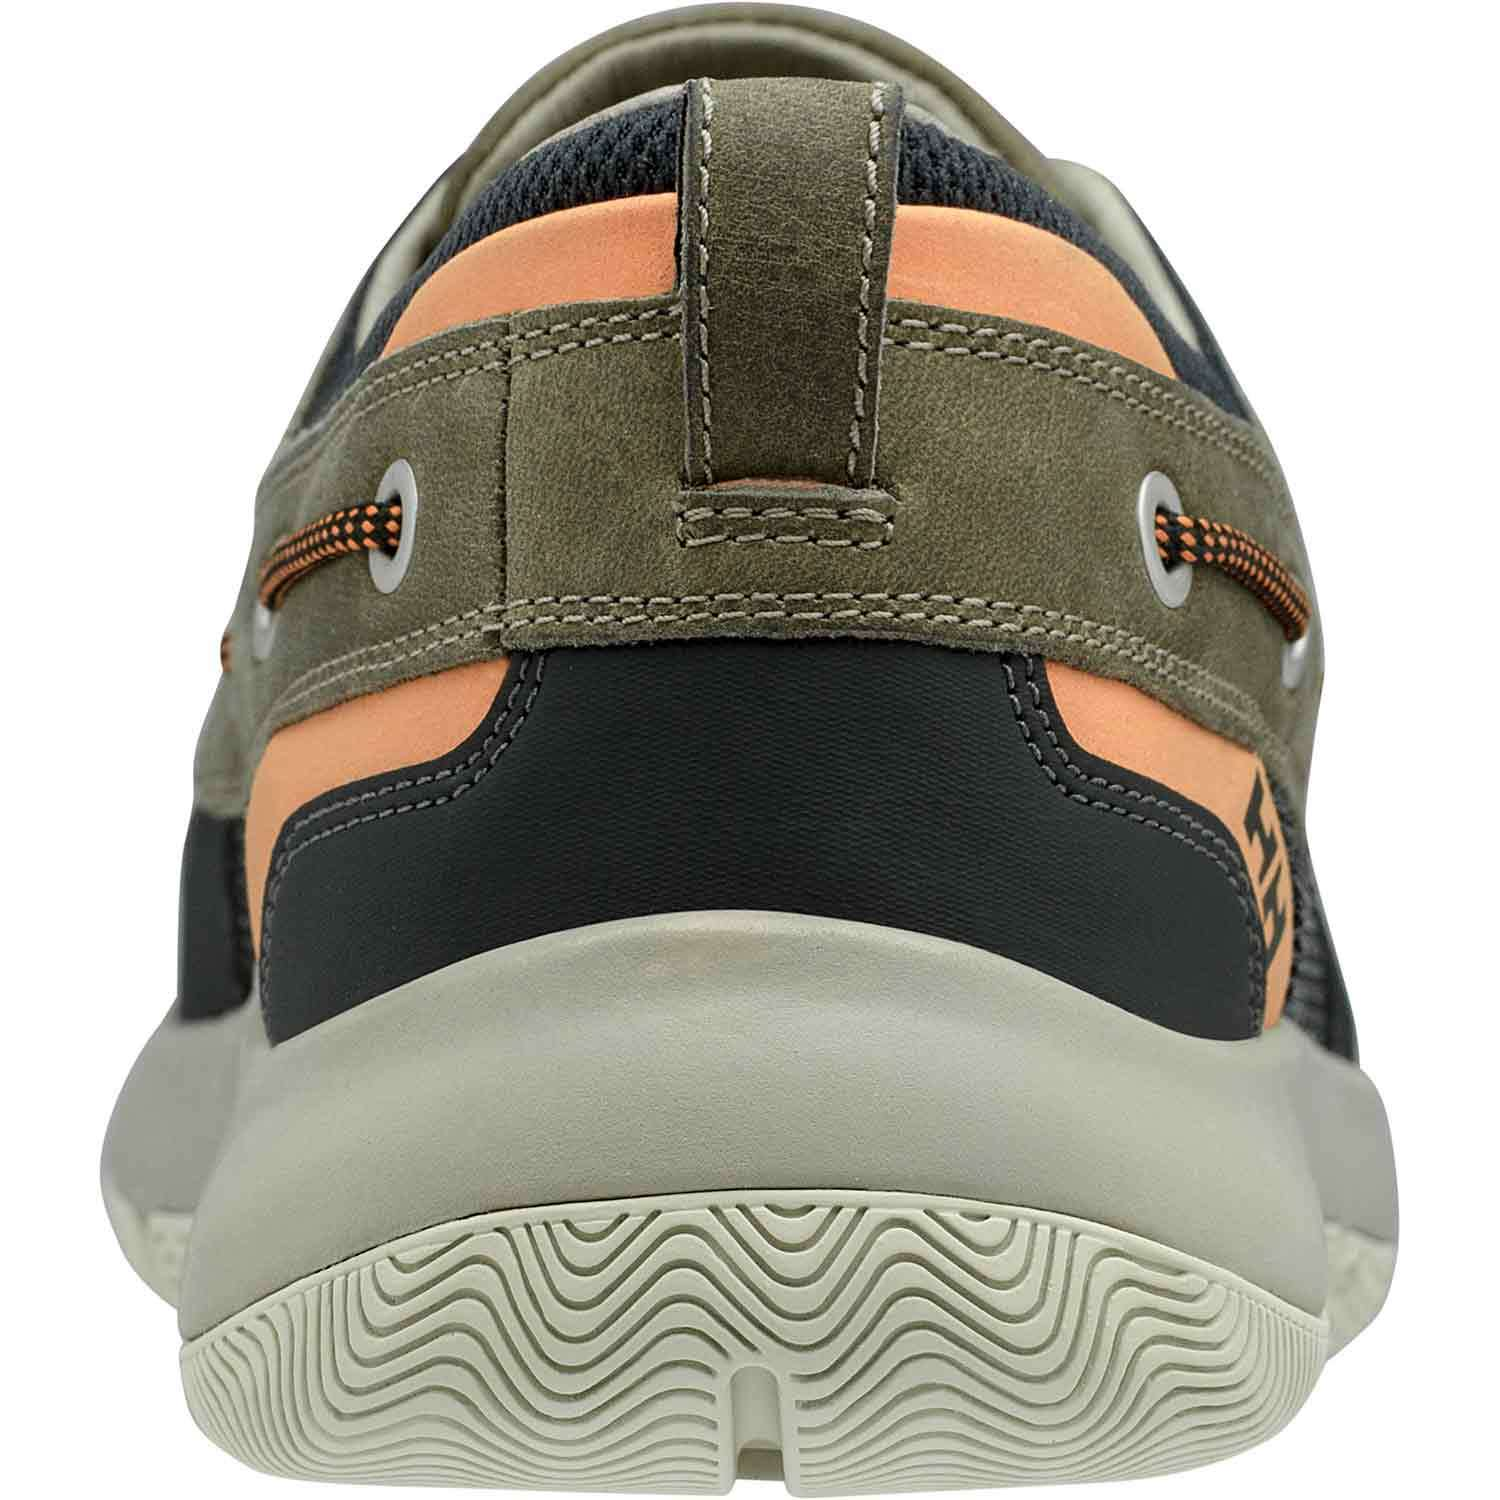 3e211c3fd New Men's Newport F-1 Deck Shoes Enlarged view of picture, opens dialog